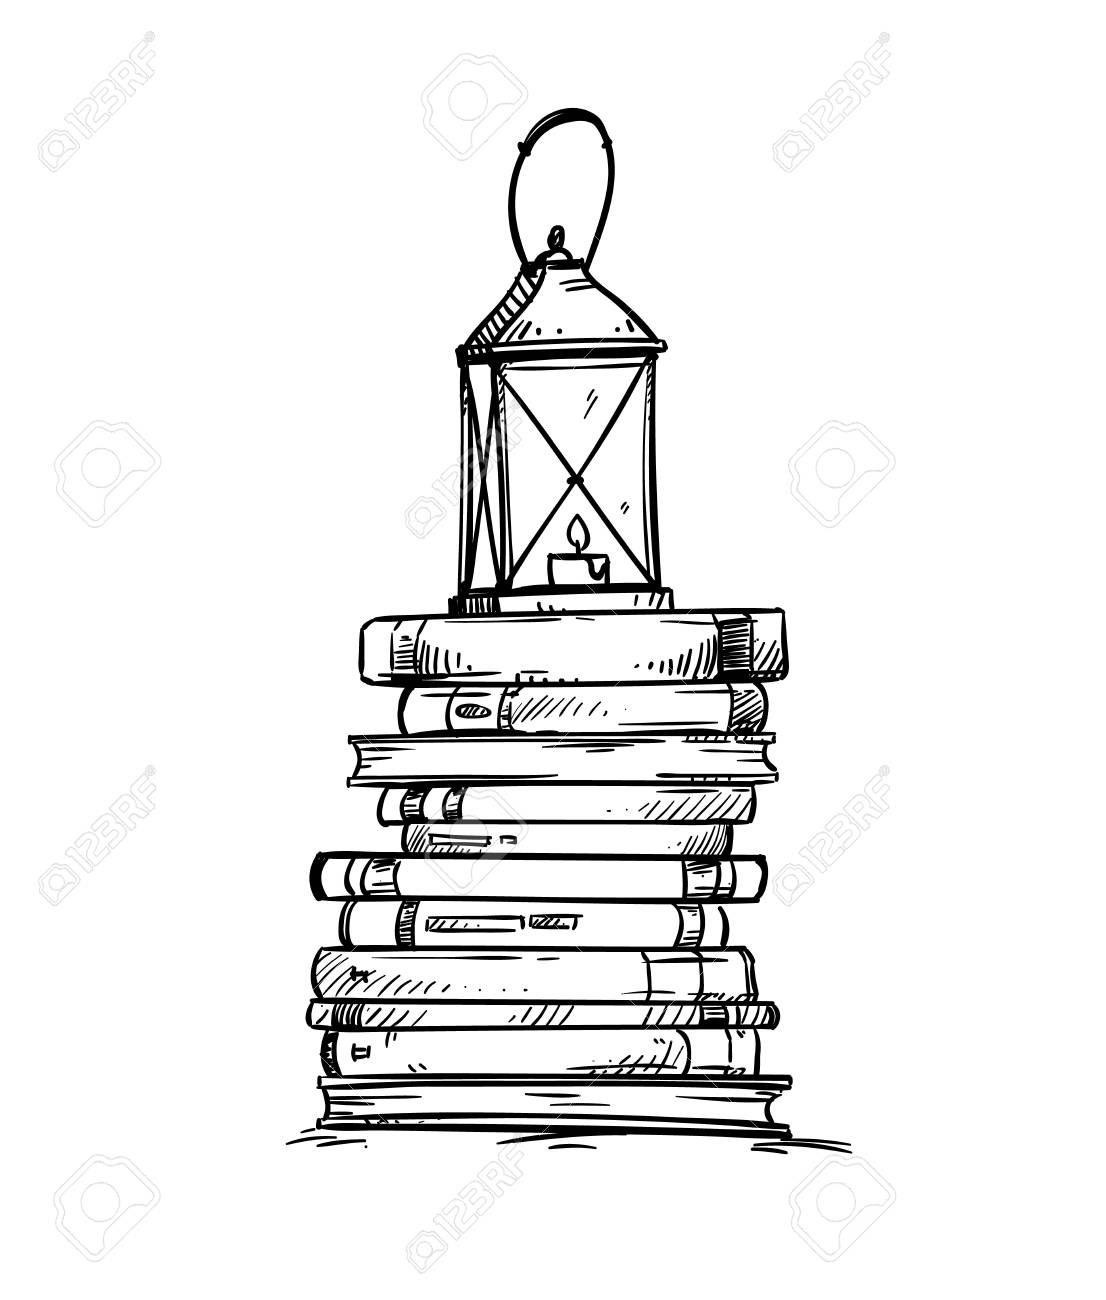 Pile Of Books With Old Lantern On The Top Vector Illustration Royalty Free Cliparts Vectors And Stock Illustration Image 115922985